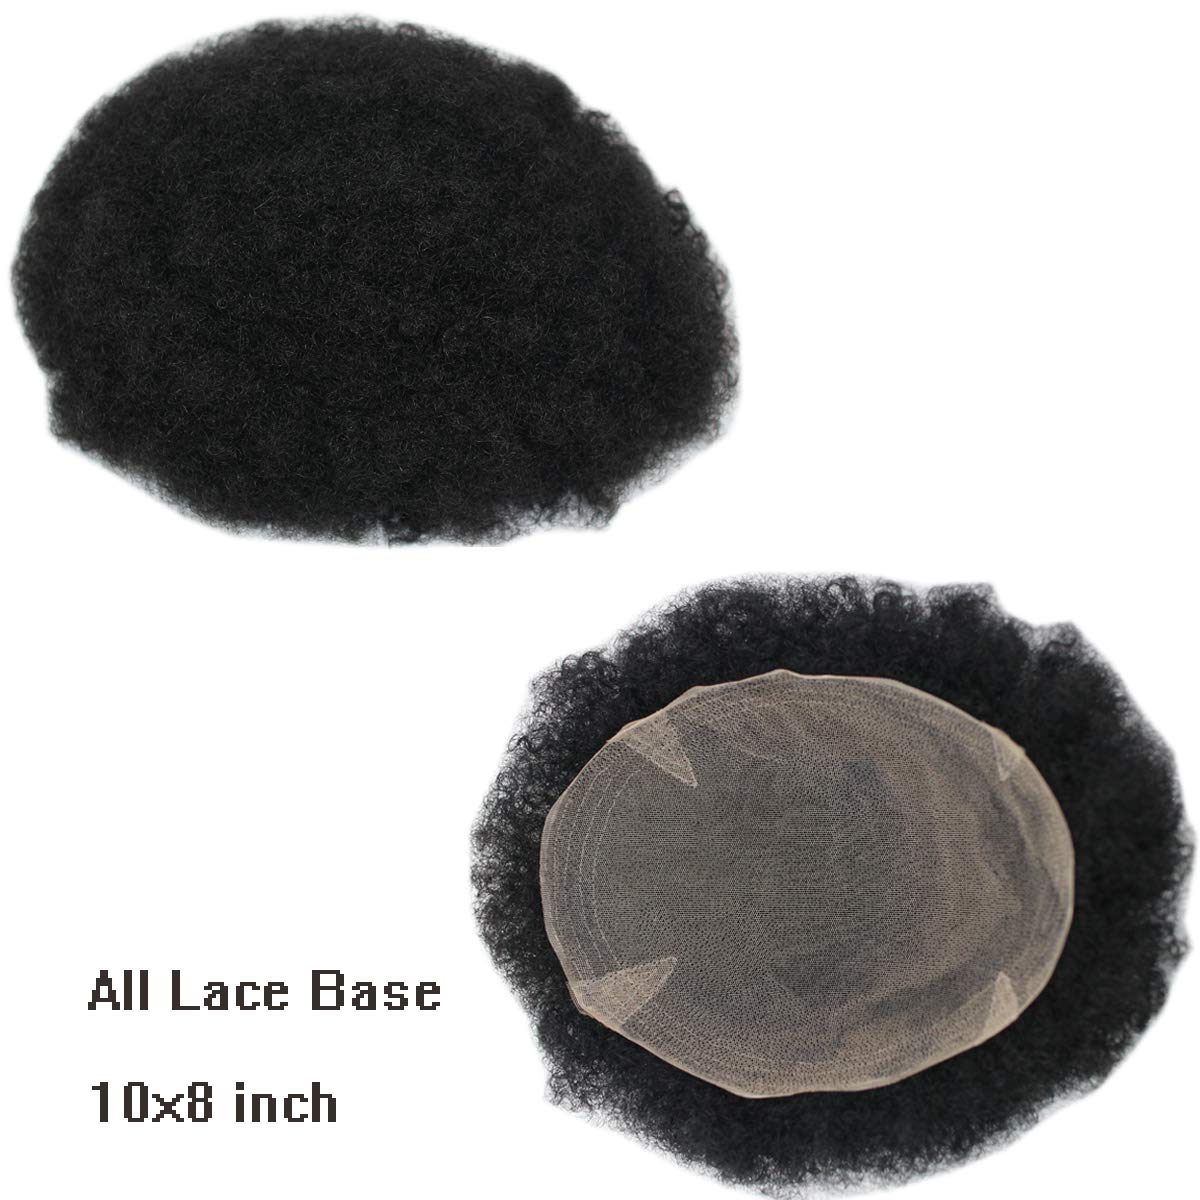 Dreambeauty Full Lace Base Hairpieces for Men 10x8 inch 100% Human Hair Toupee Hand Made Men's Hairpiece Afro Curl for Men